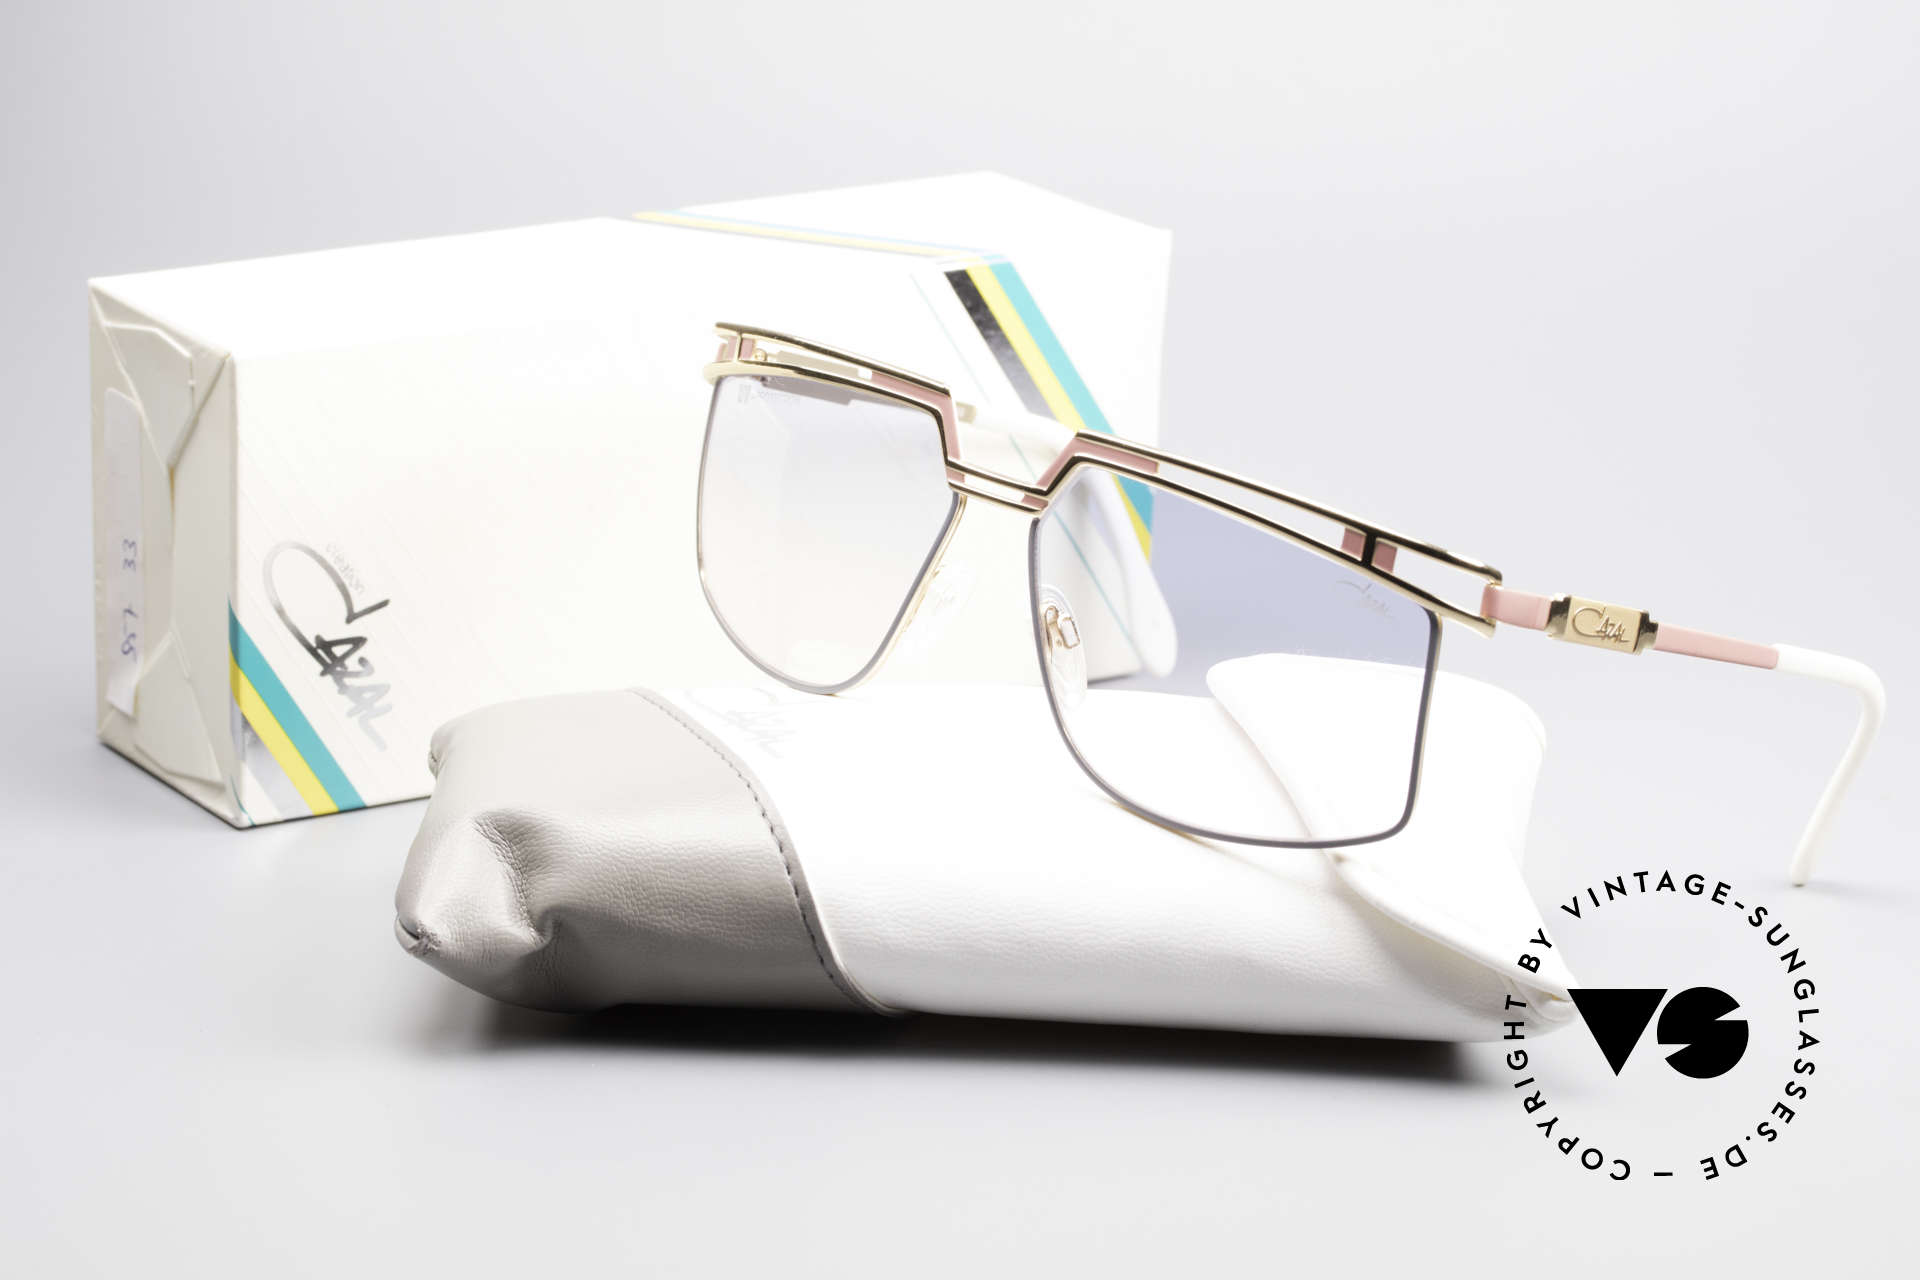 Cazal 957 XLarge HipHop Vintage Shades, NO RETRO or re-issue, but a precious 30 years old rarity, Made for Men and Women